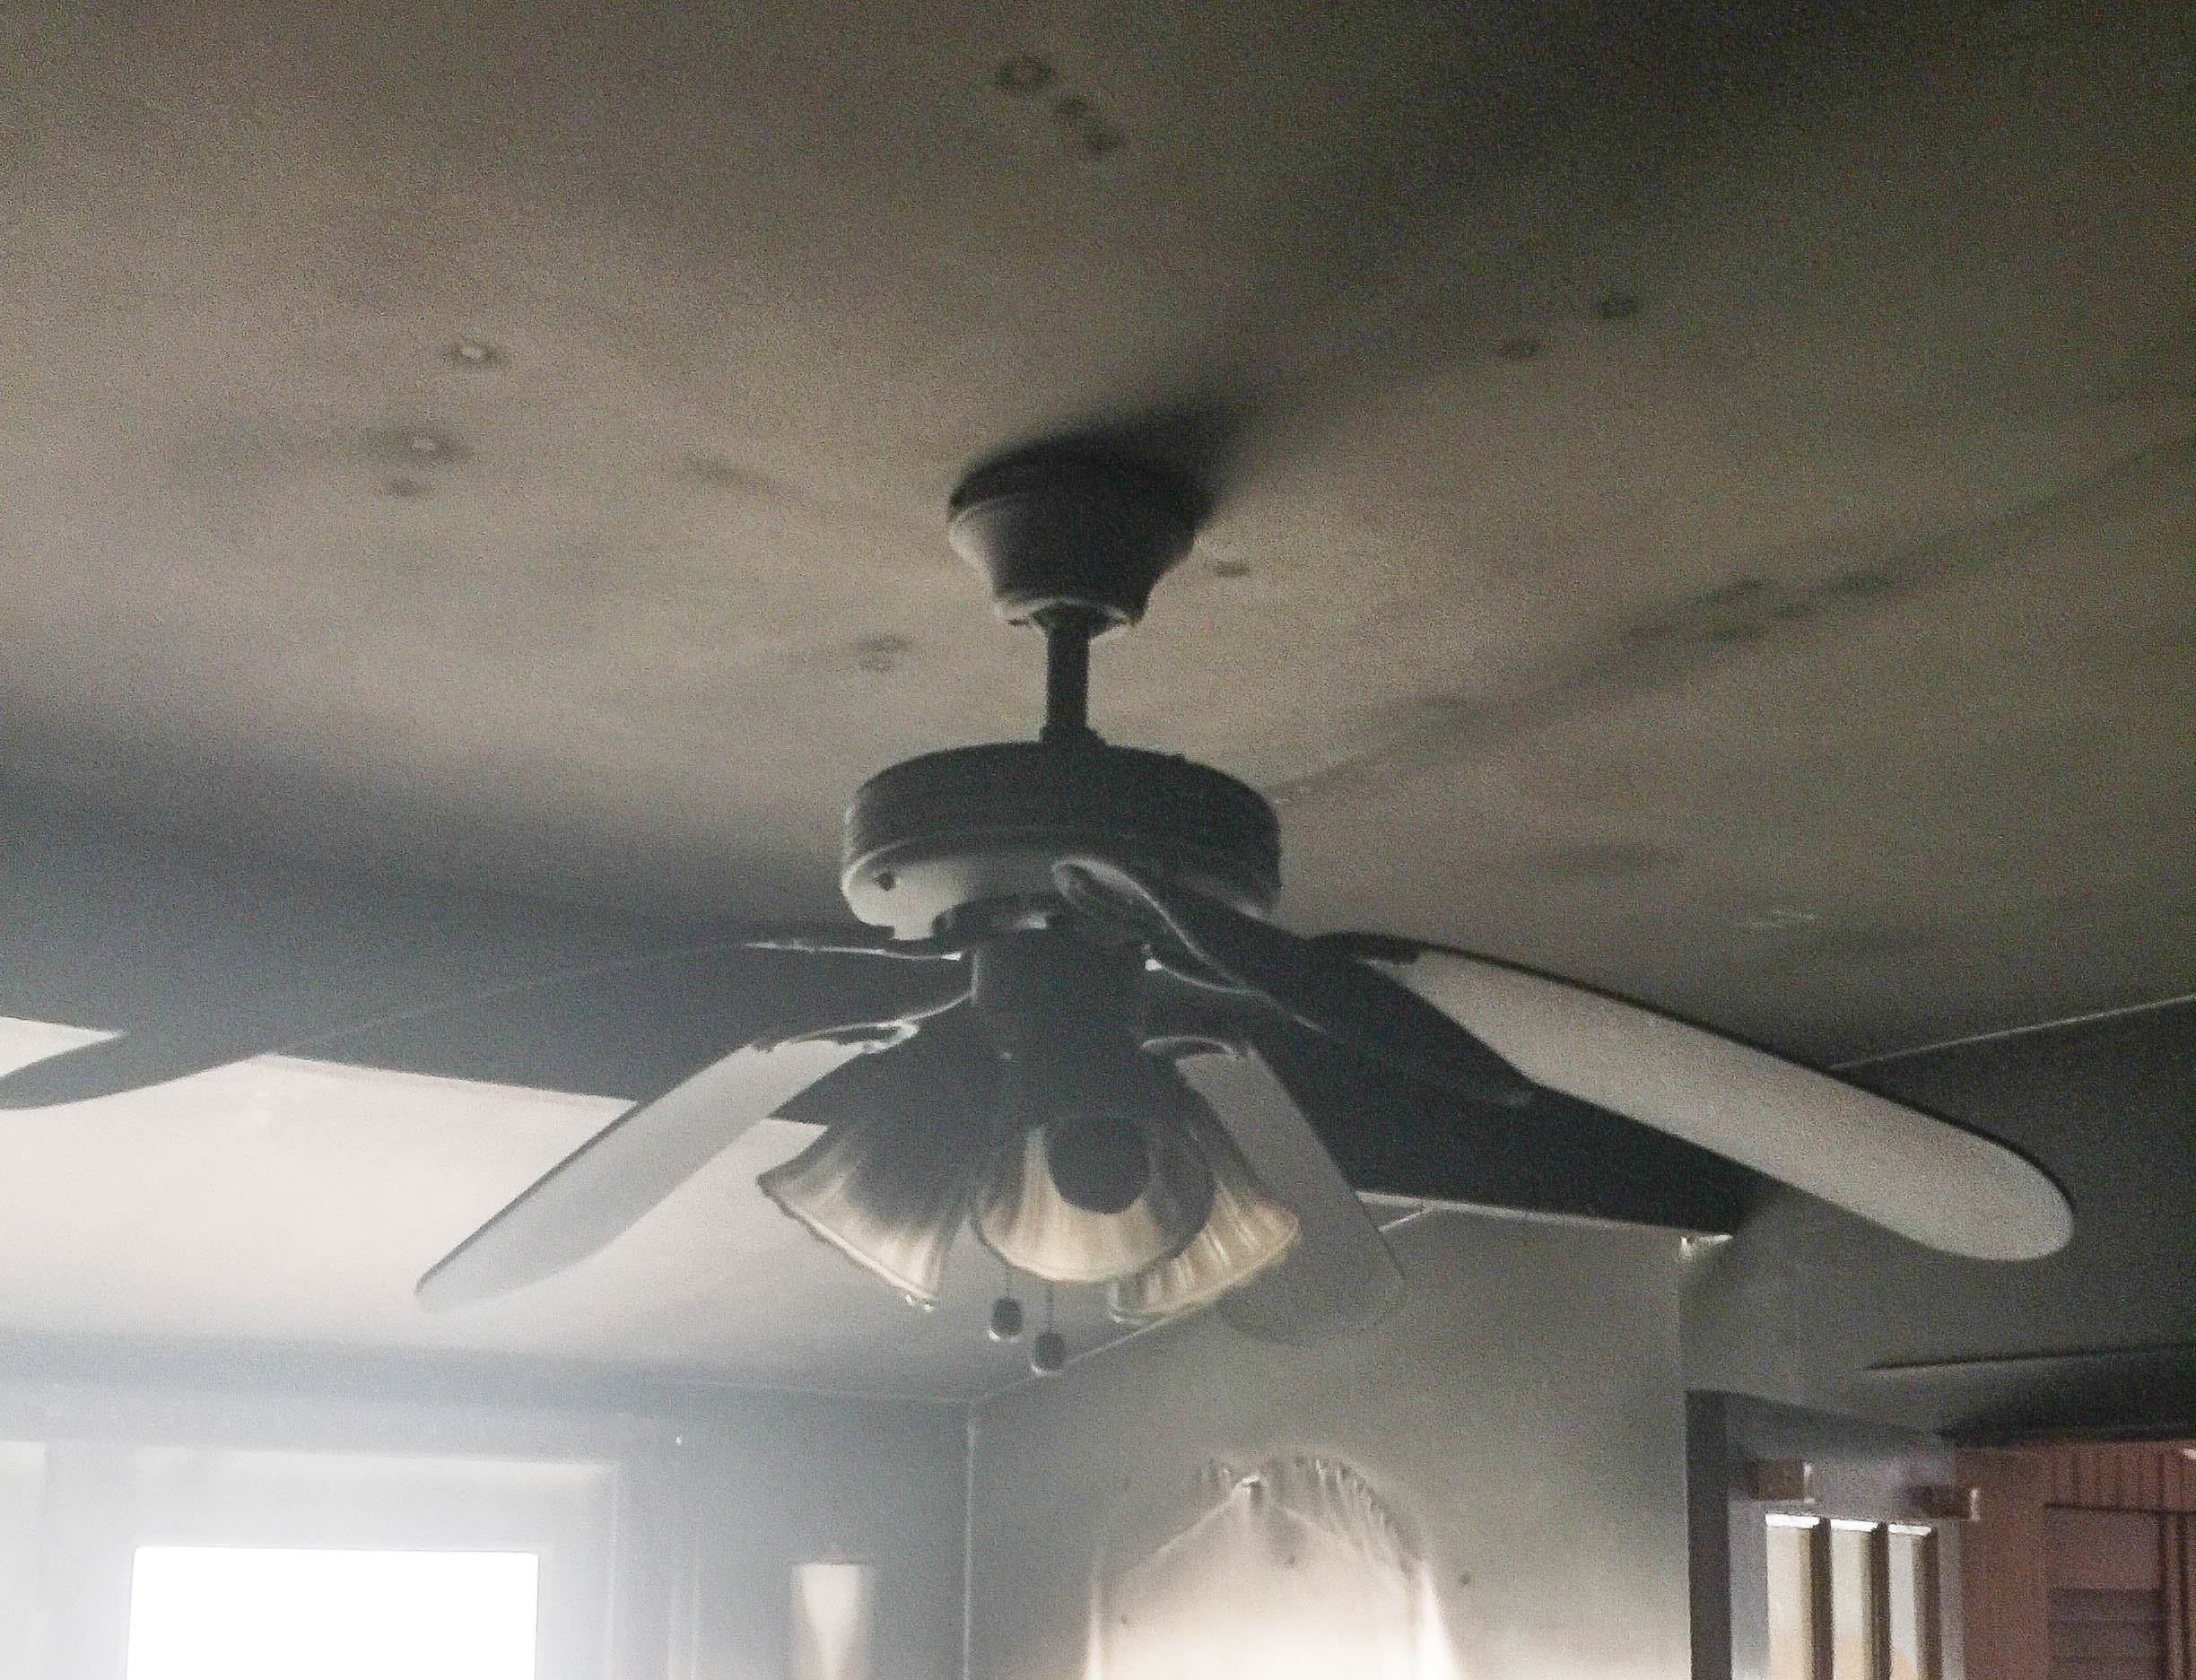 Christine S. Fire Damage Ceiling